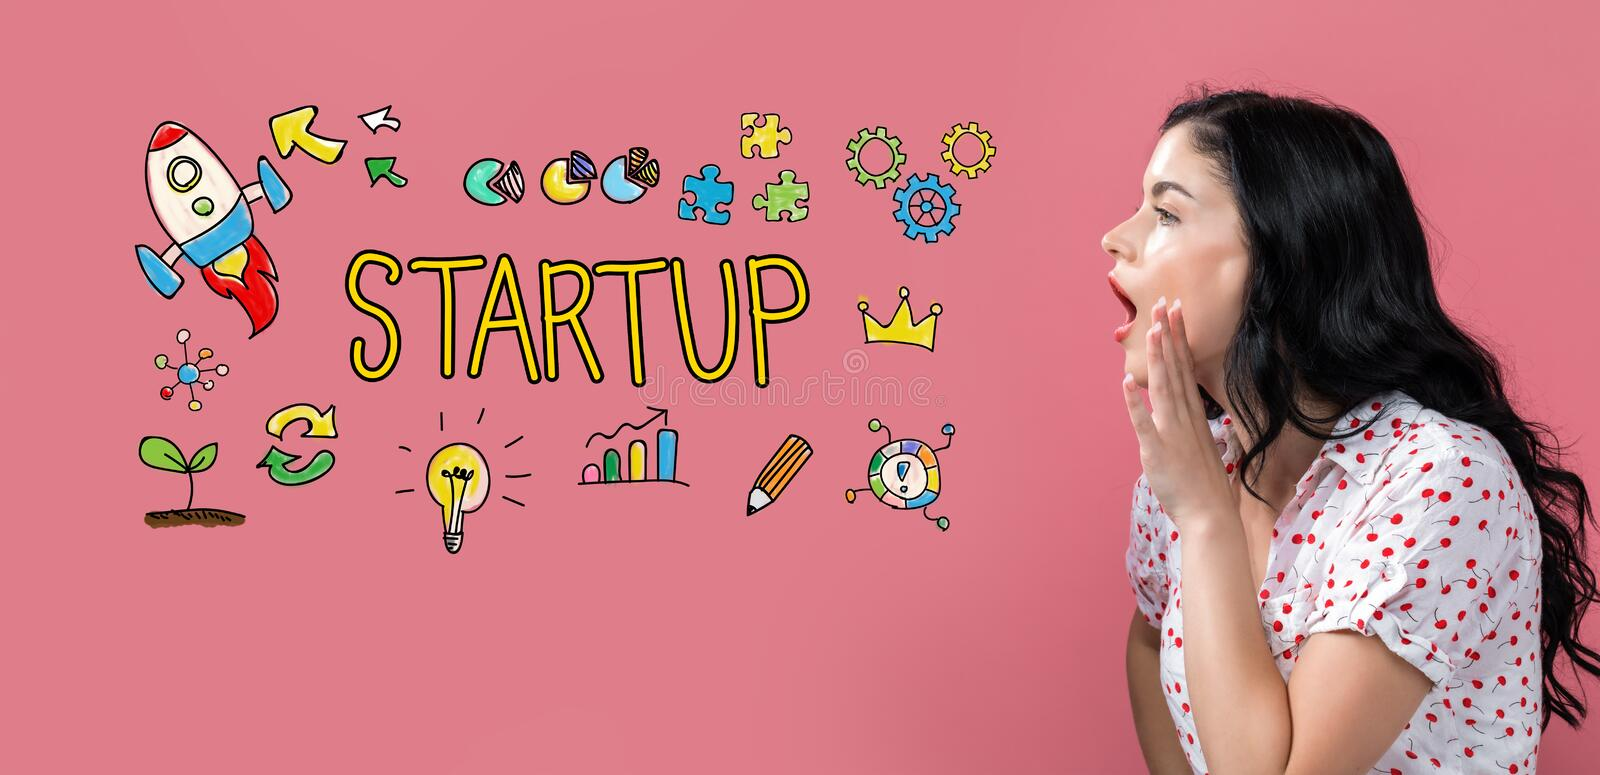 Startup with young woman speaking. On a pink background stock images